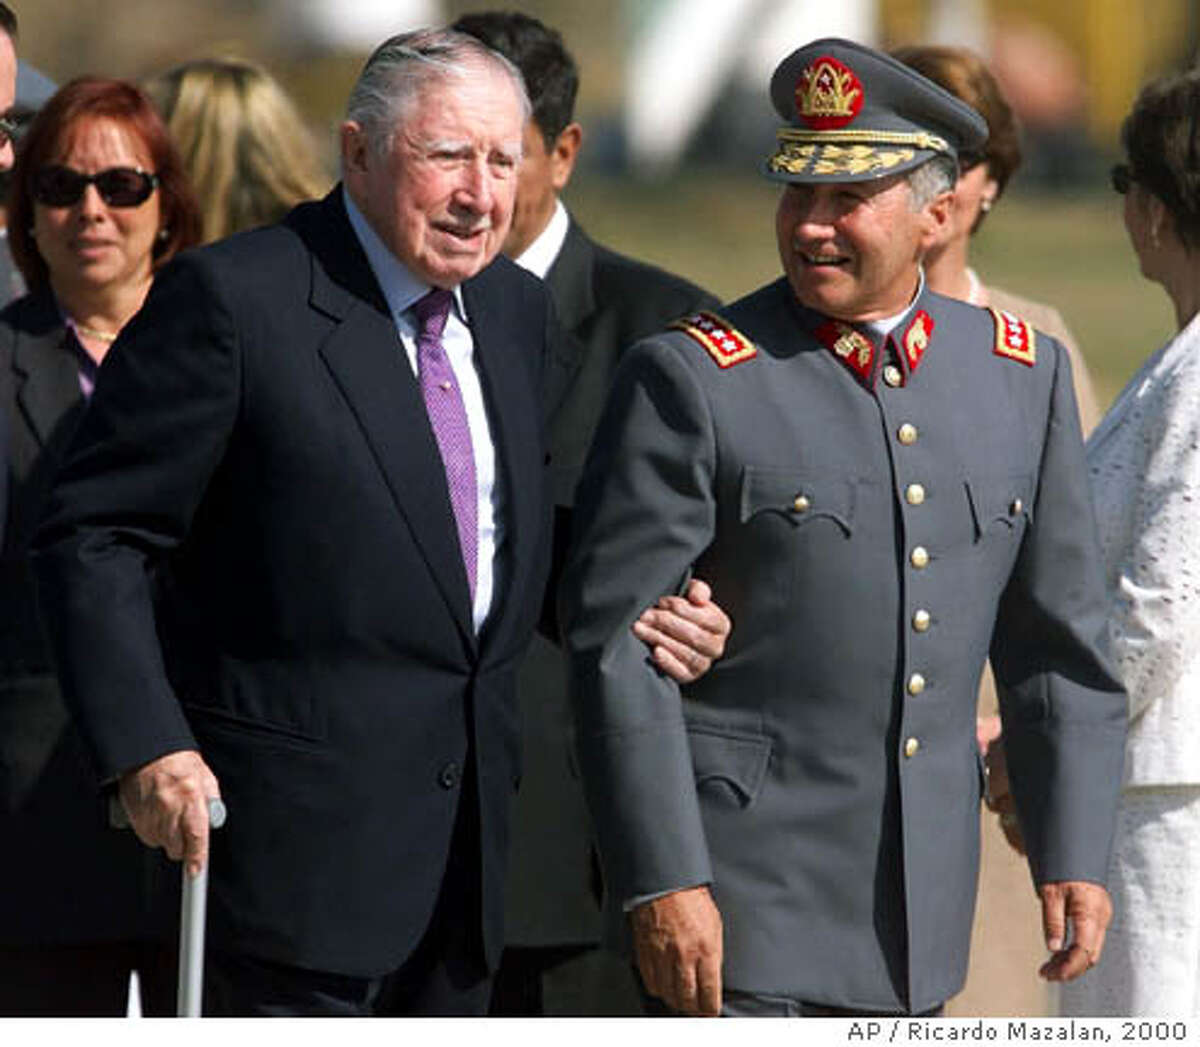 **FILE** Army Commander in Chief Lt. Gen. Ricardo Izurieta escorts Gen. Augusto Pincohet, left, upon his arrival to the Air Force base at the Pudahuel airport in Santiago, Chile in this March 3, 2000 file photo. Pinochet, who overthrew Chile's democratically elected Marxist president in a bloody coup and ruled this Andean nation for 17 years, died Sunday, Dec. 10, 2006 of complications following a heart attack. He was 91. (AP Photo/Ricardo Mazalan, File)